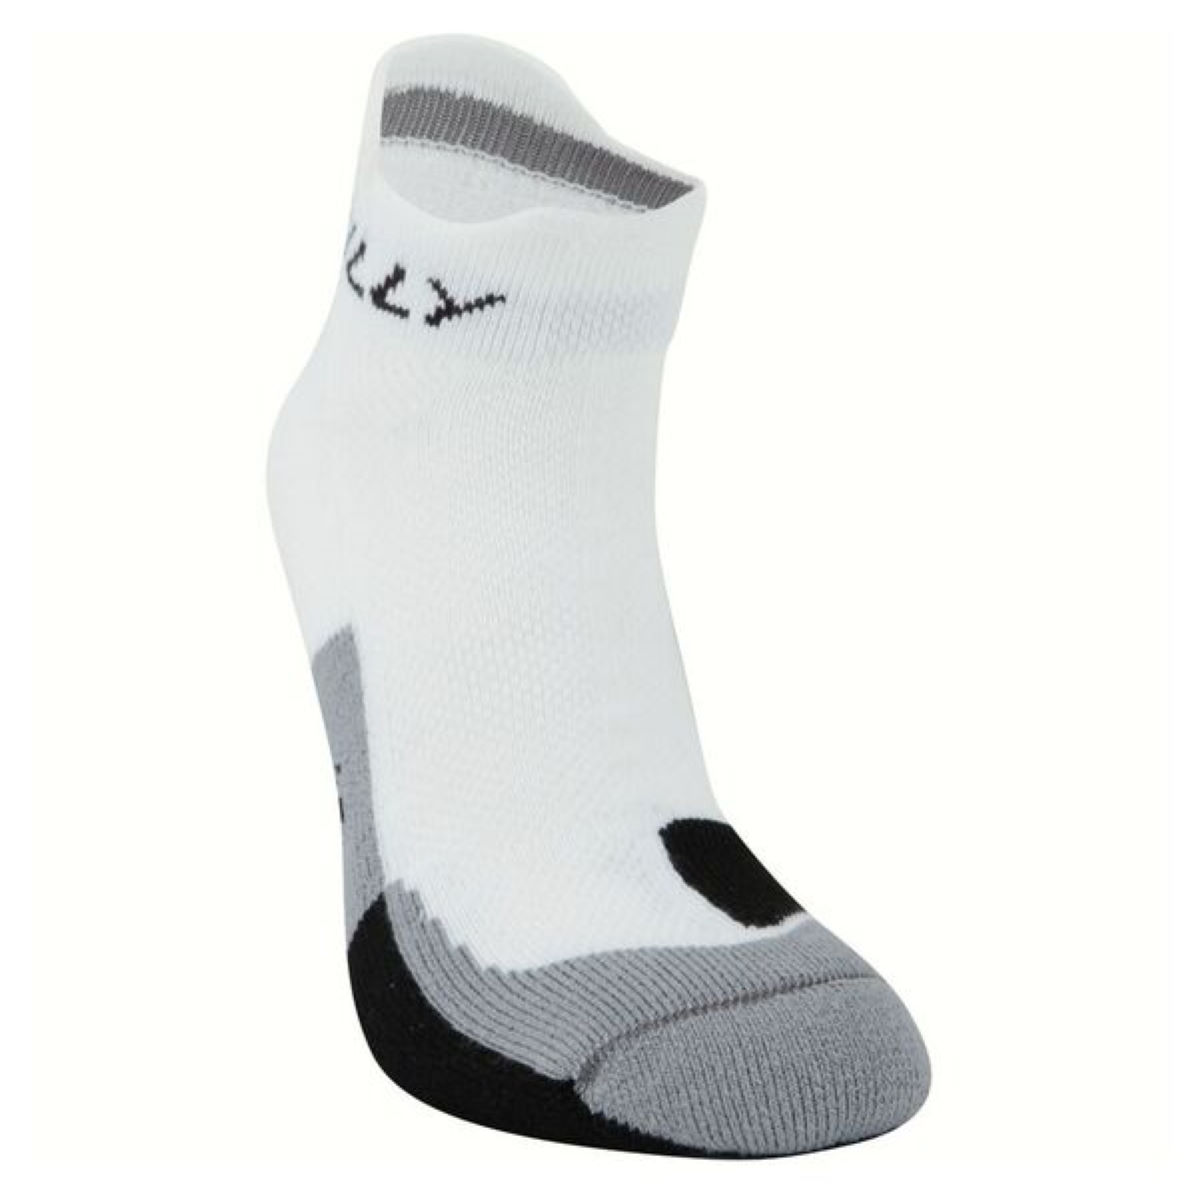 Socquettes Hilly Cushion - XL White/Black/Grey  Chaussettes